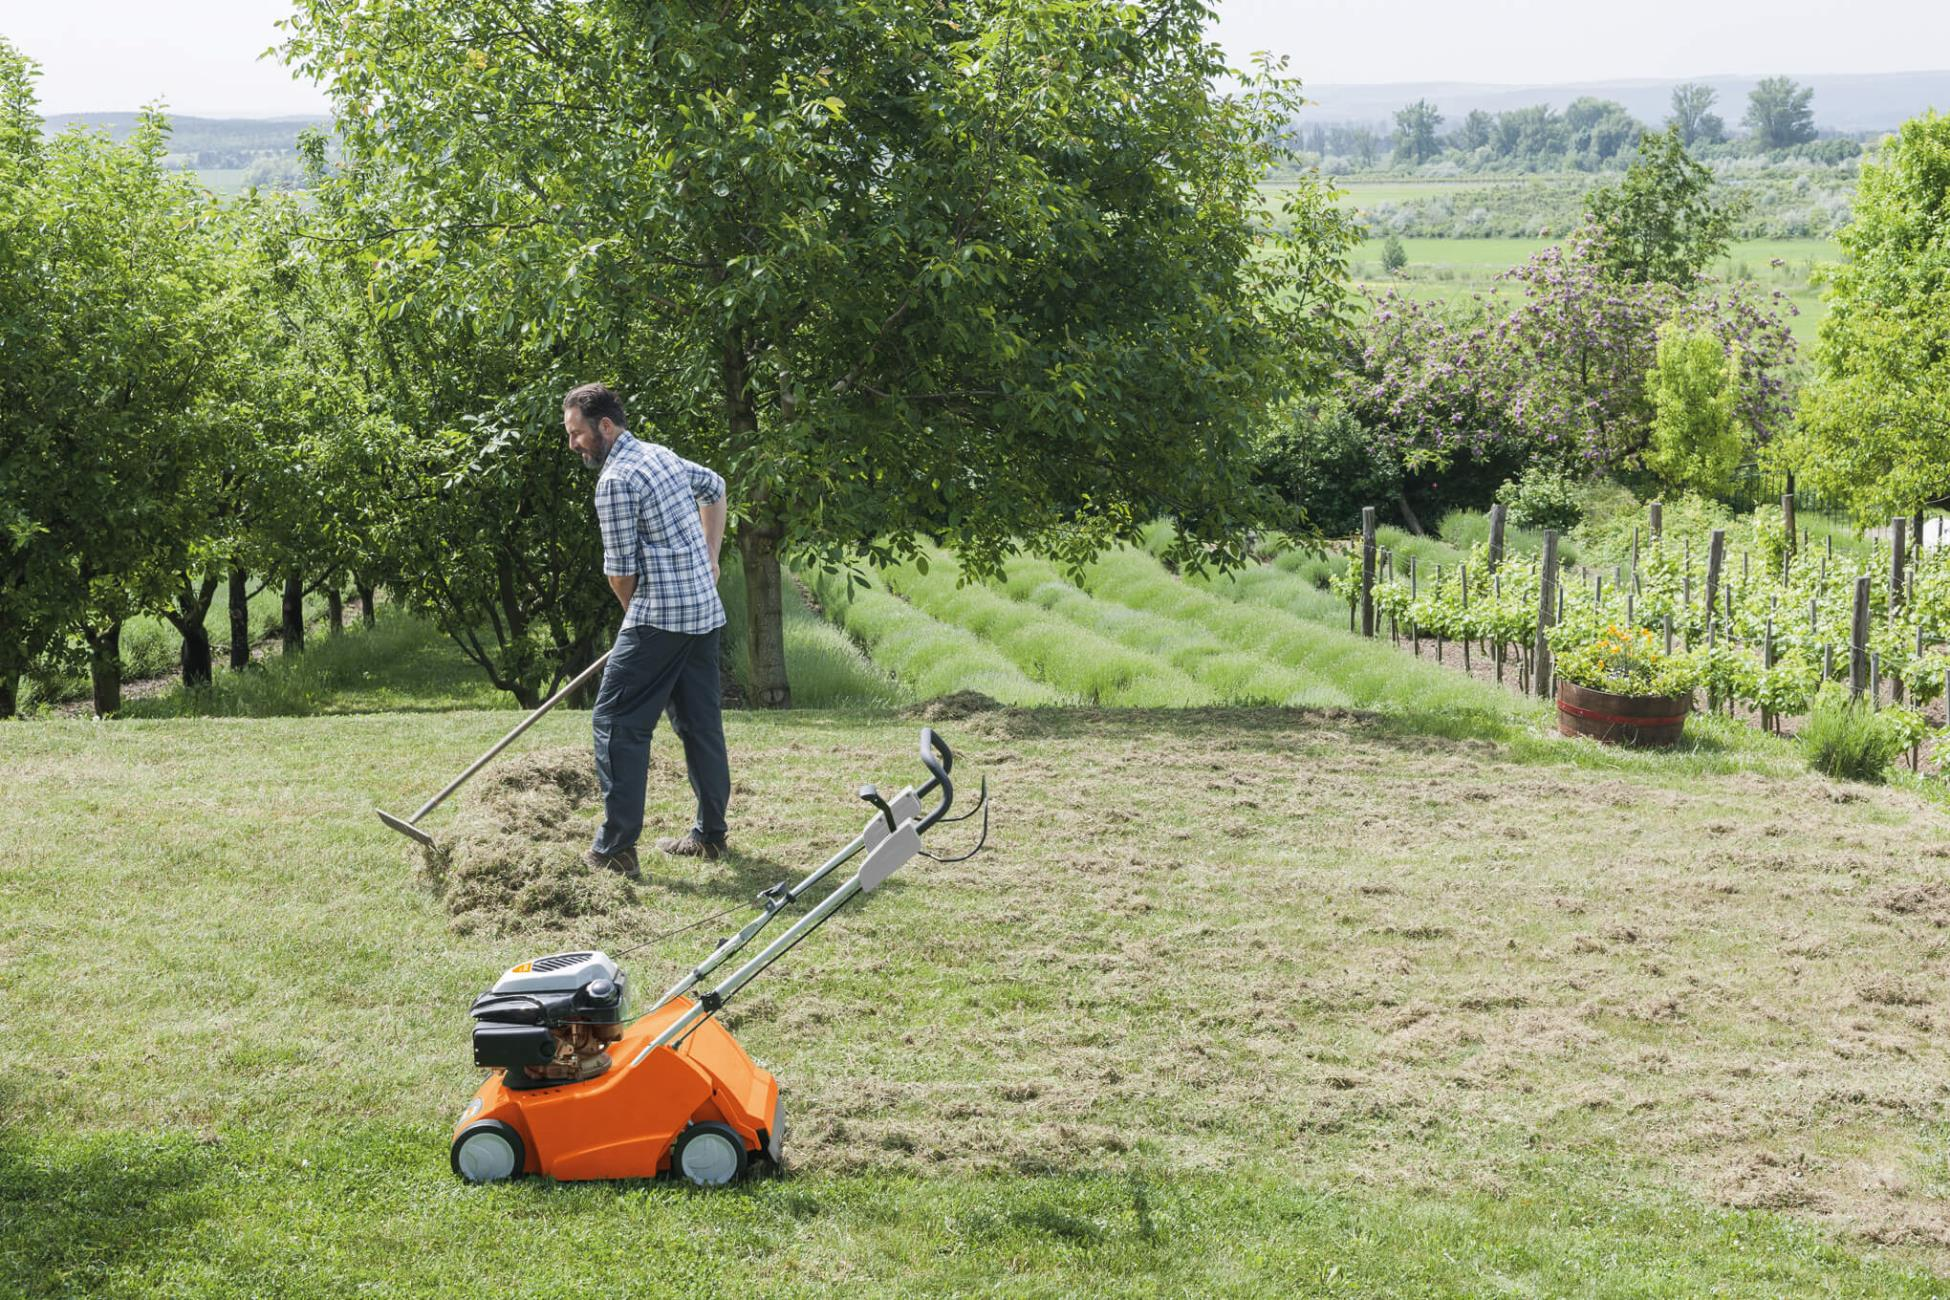 Stihl scarifiers from John Miller Garden Machinery